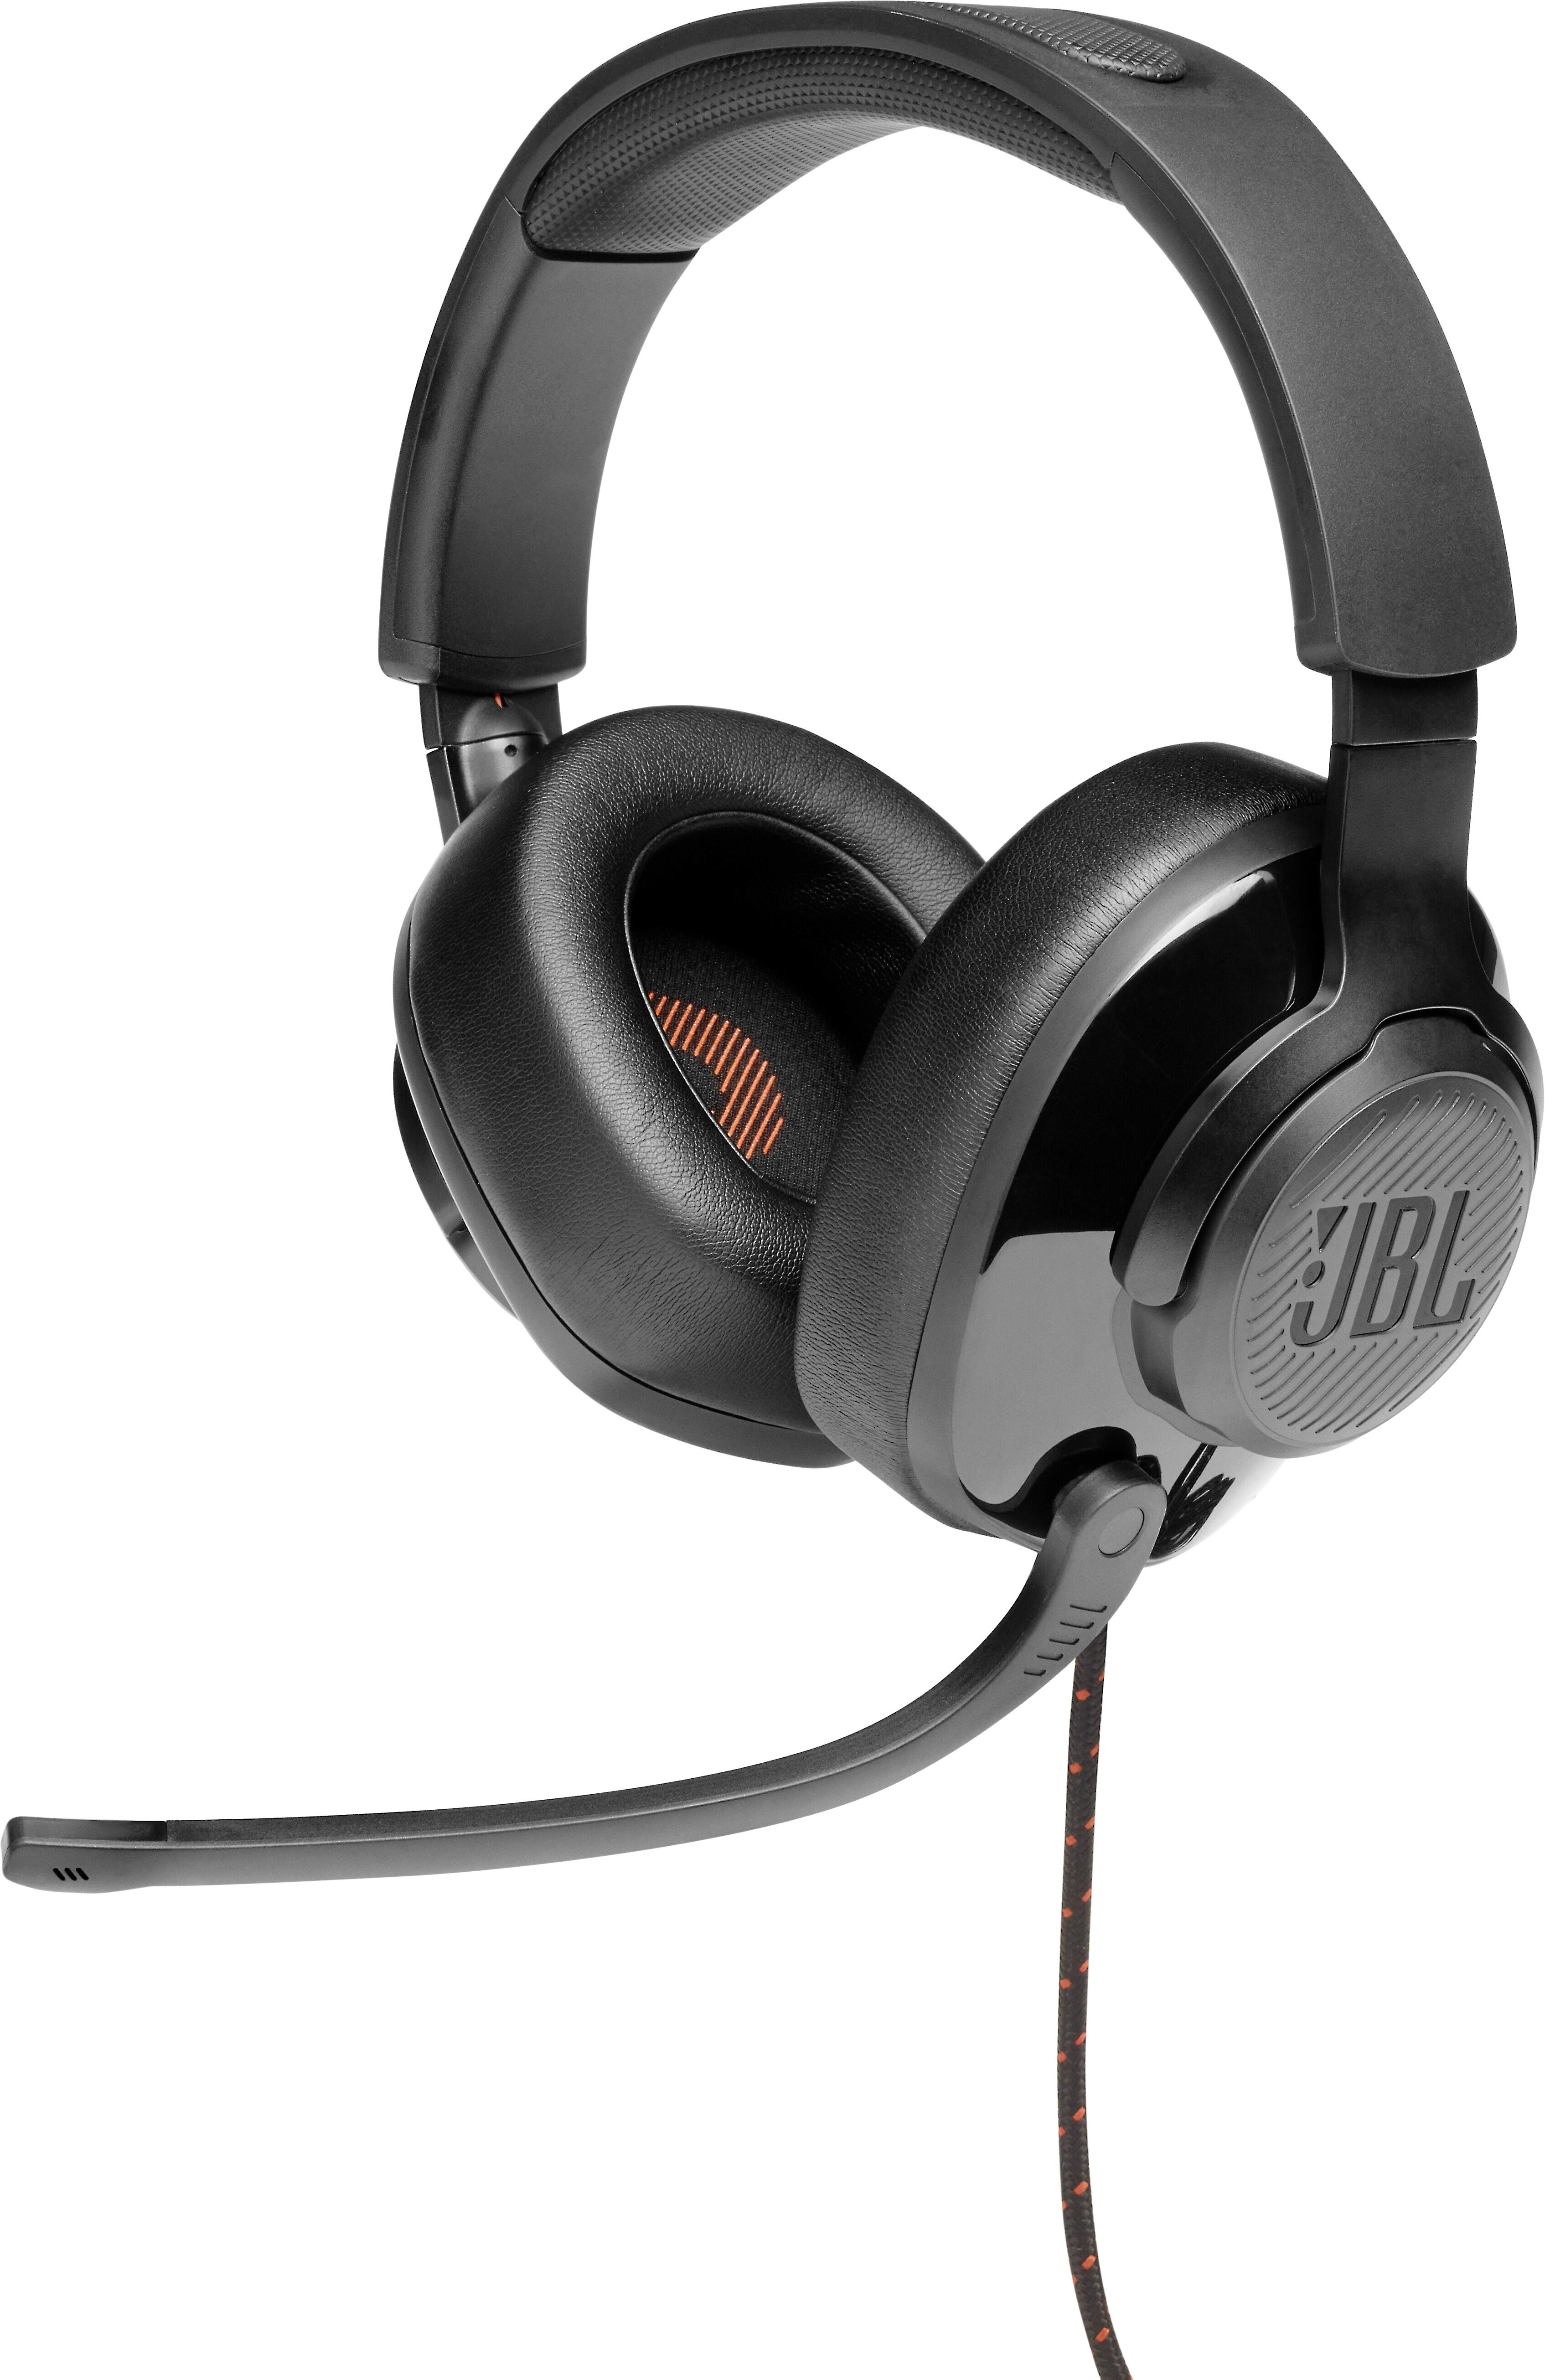 Jbl Quantum 200 Over Ear Wired Gaming Headset For Pc Playstation And Xbox At Crutchfield